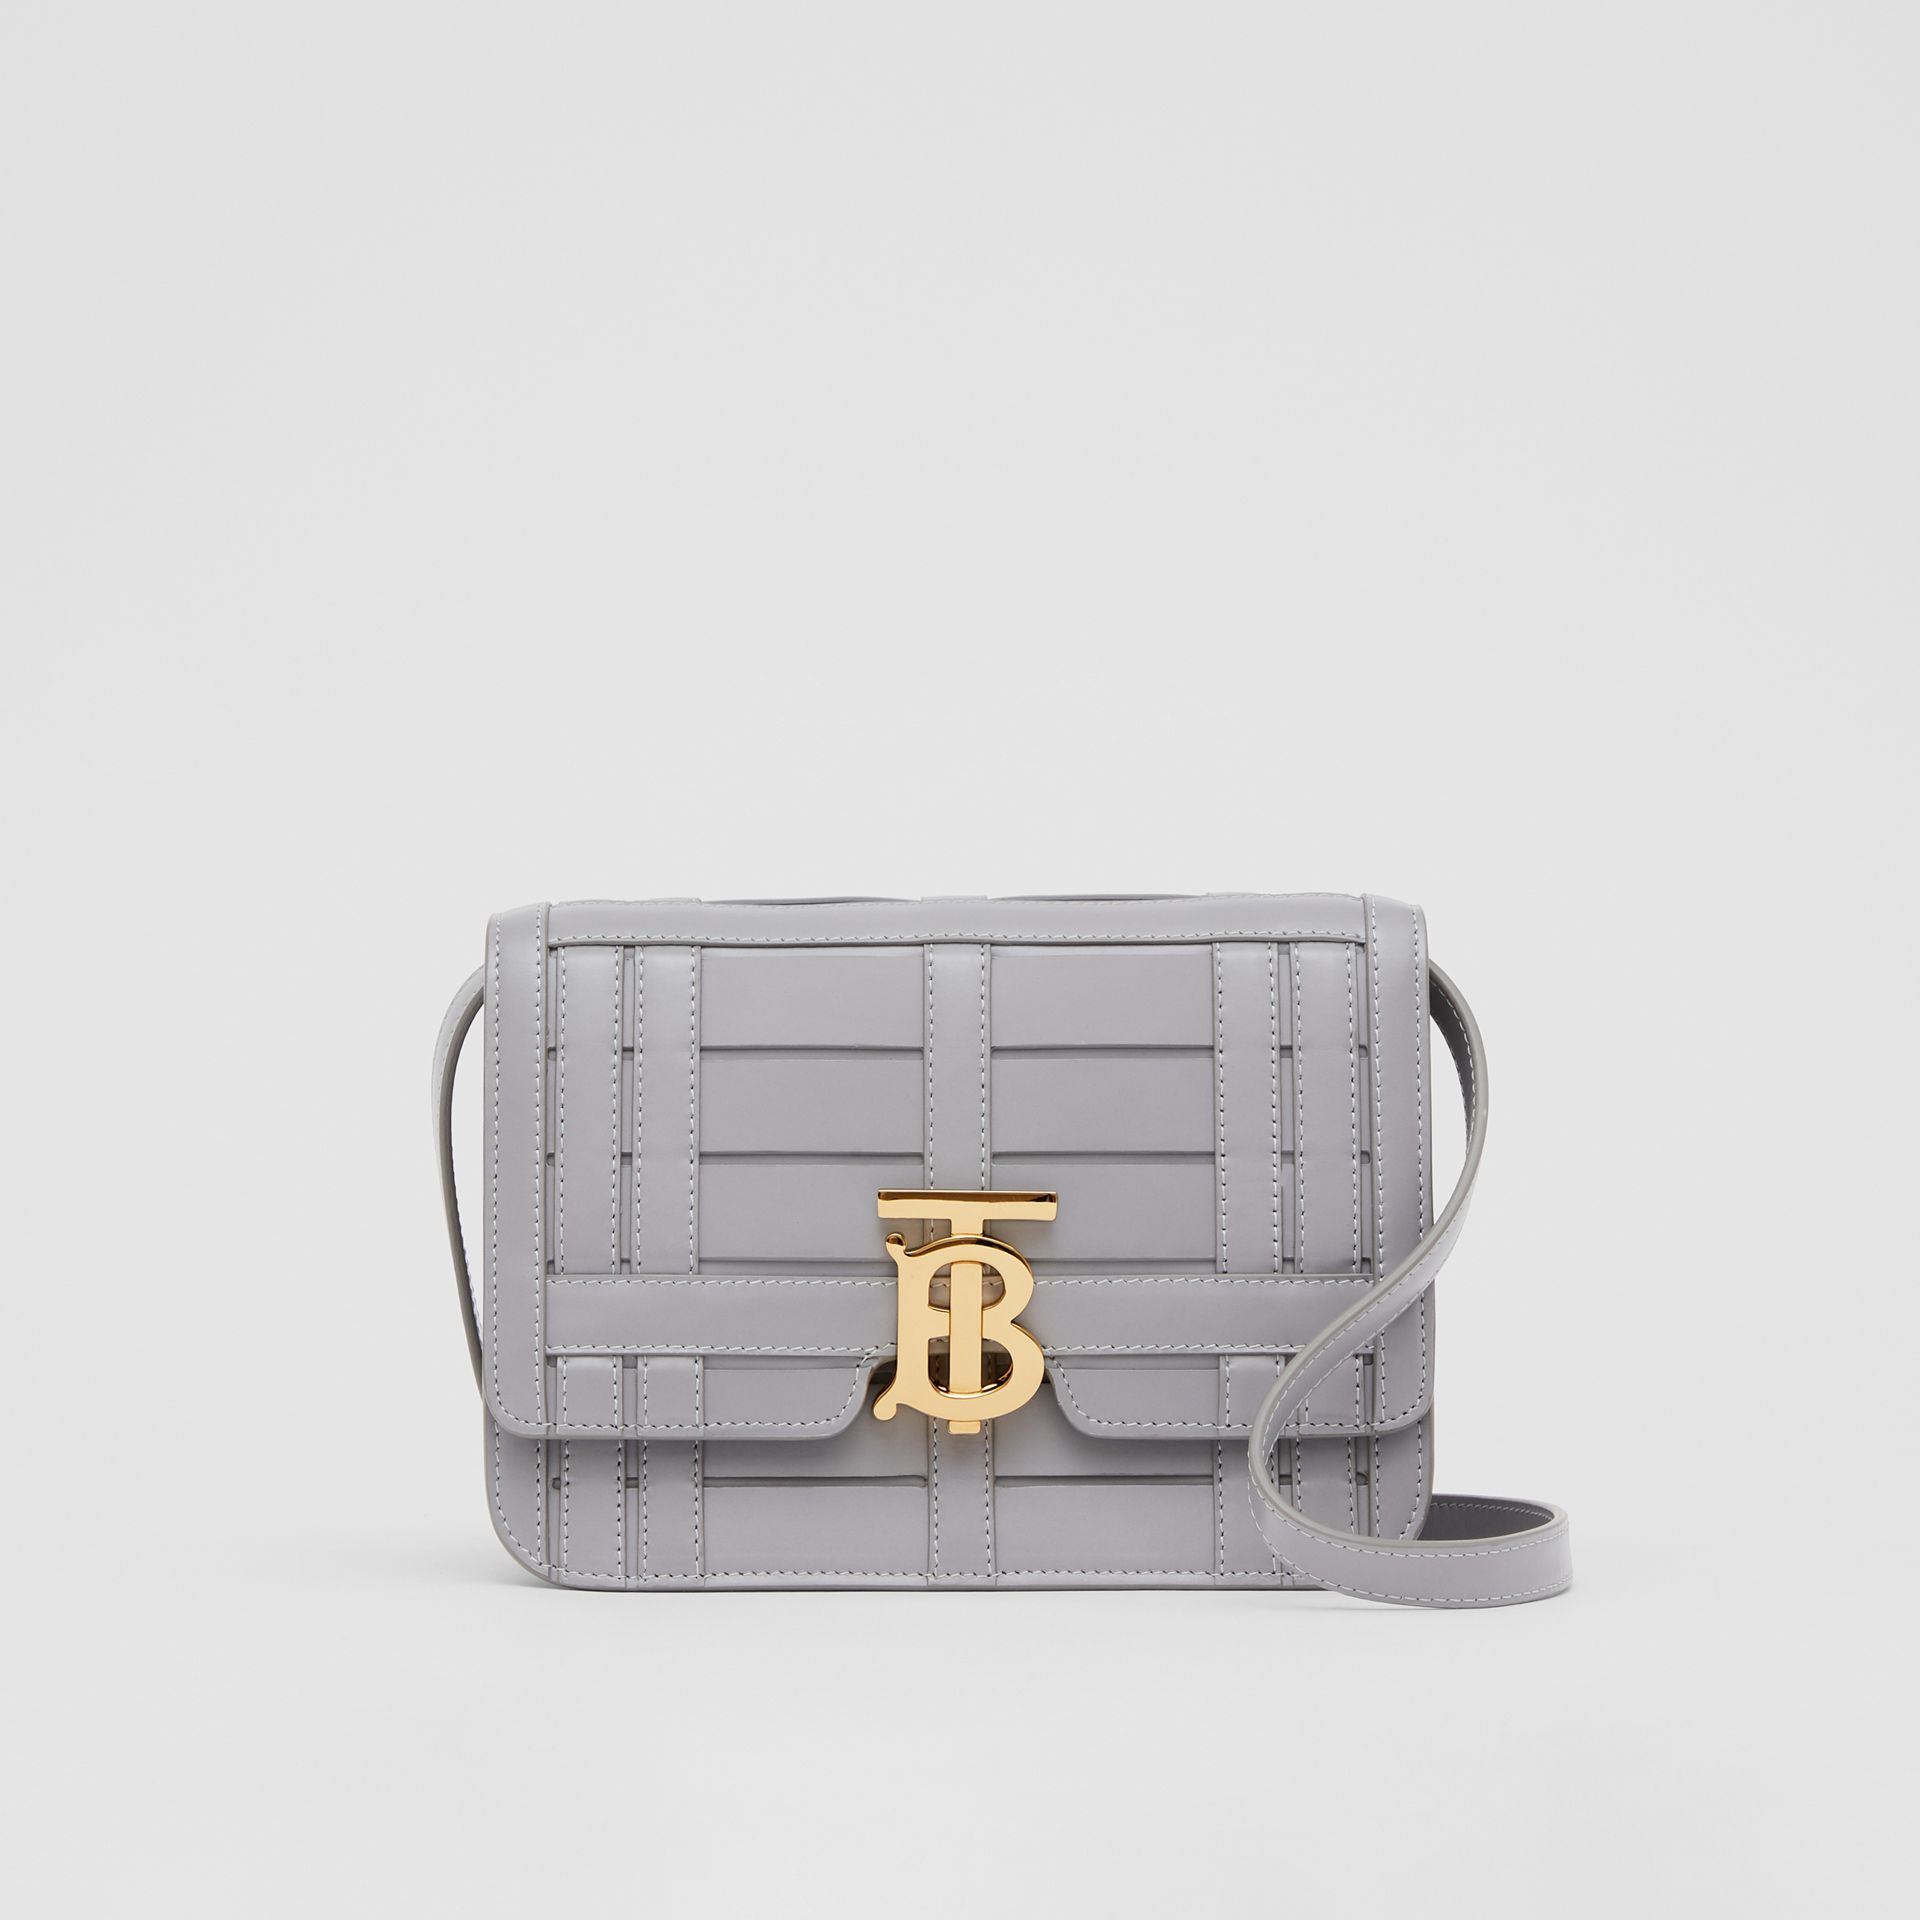 Small Woven Leather TB Bag in Cloud Grey - Women | Burberry - gallery image 0